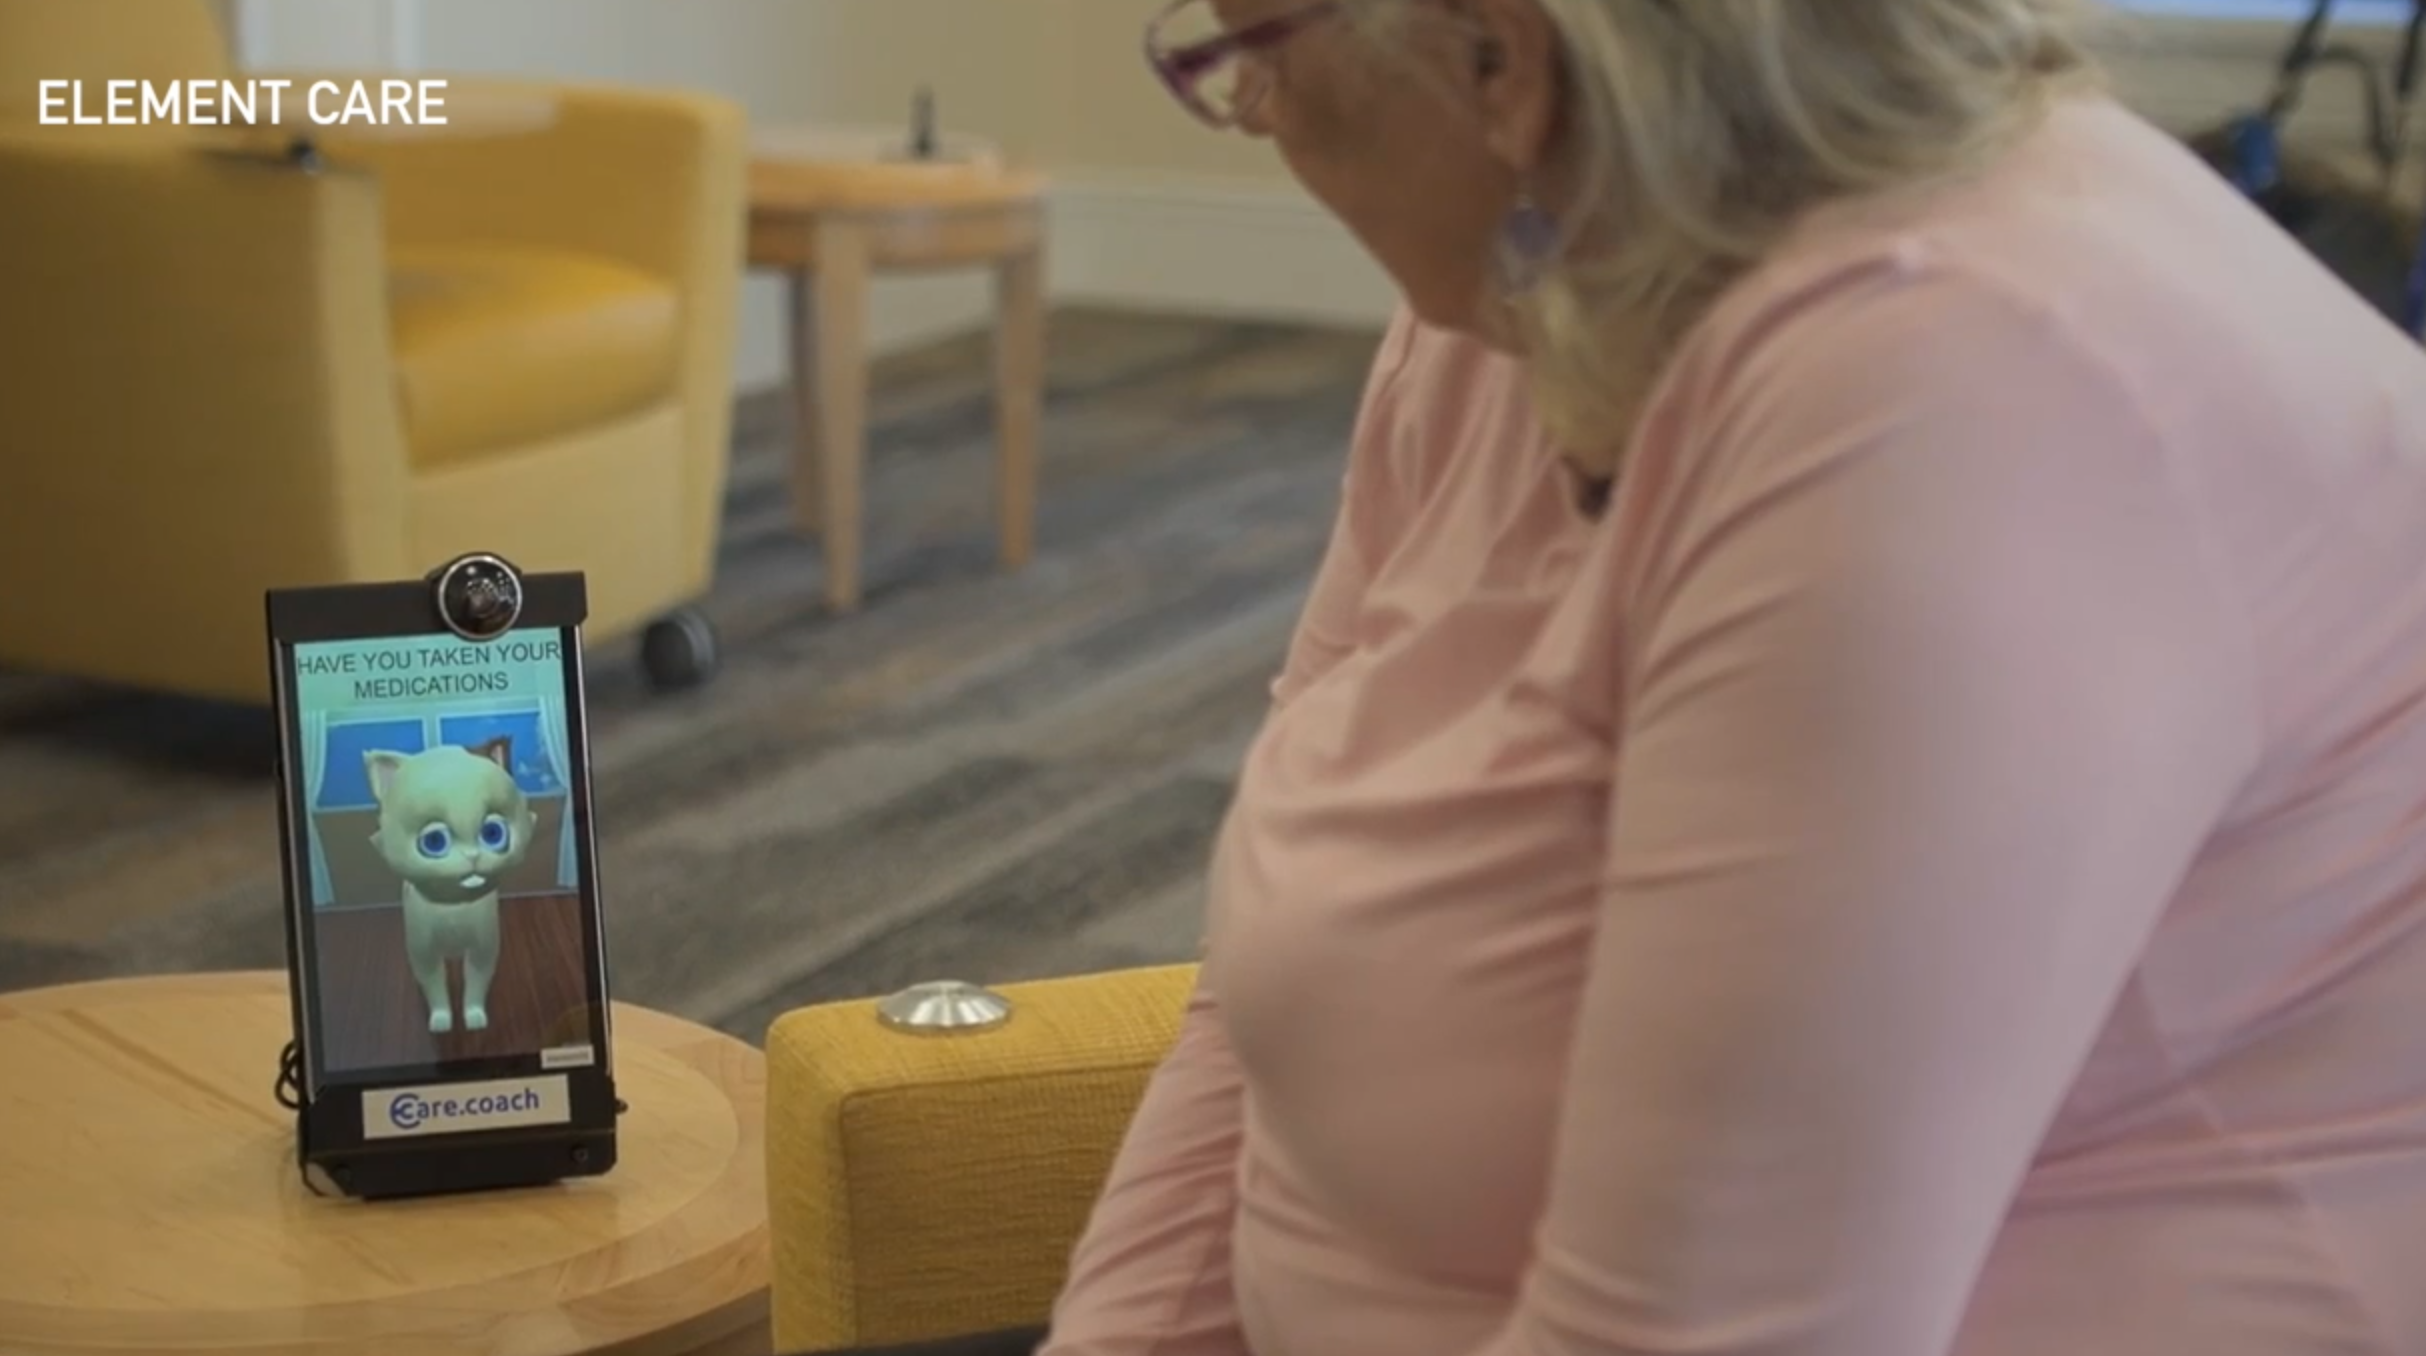 These avatars are helping seniors with medical care